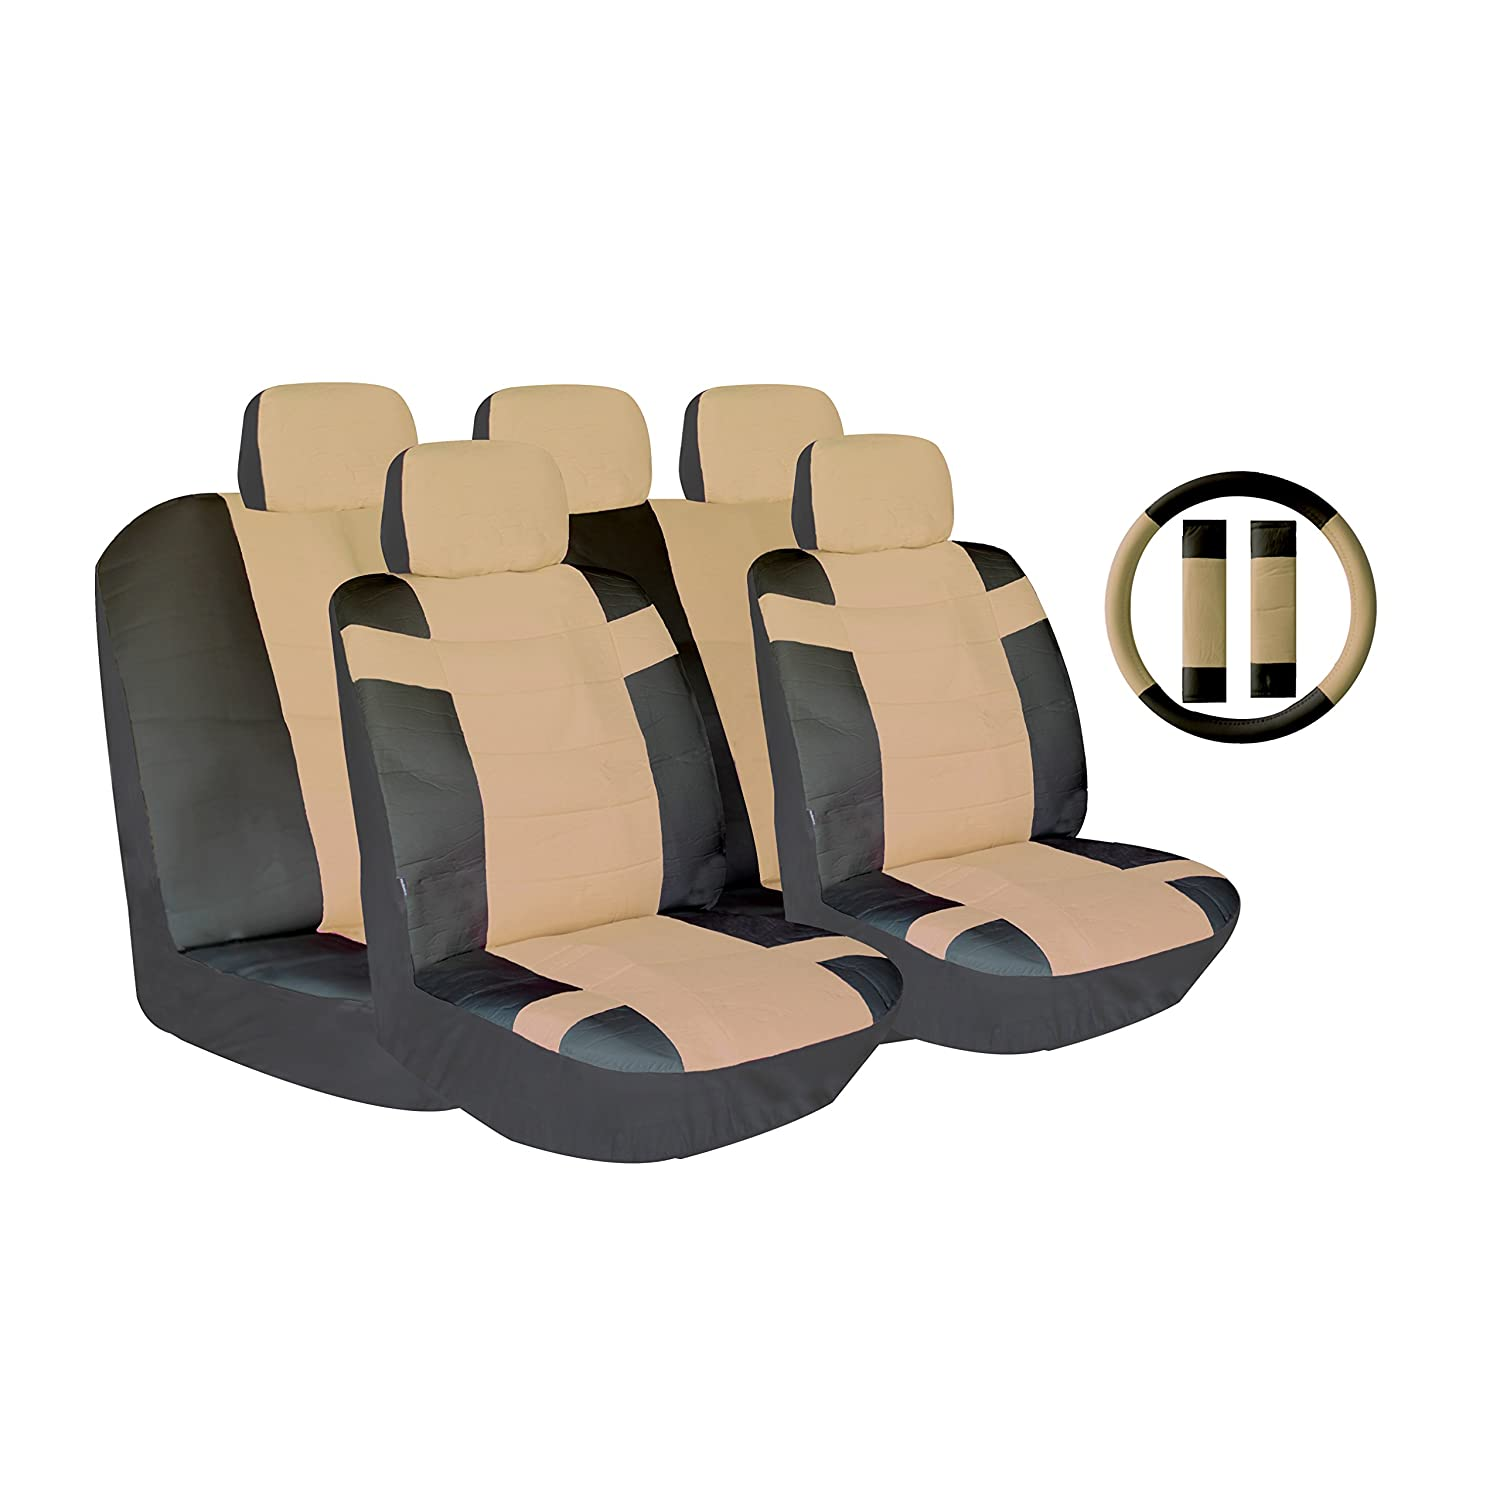 AutoSphere 124104-twotonesctan Black and Tan Universal Fit Luxury Two Tone Pu Synthetic Leather Seat Cover Set Accent Superior with Steering Wheel Belt Pad 14 Piece